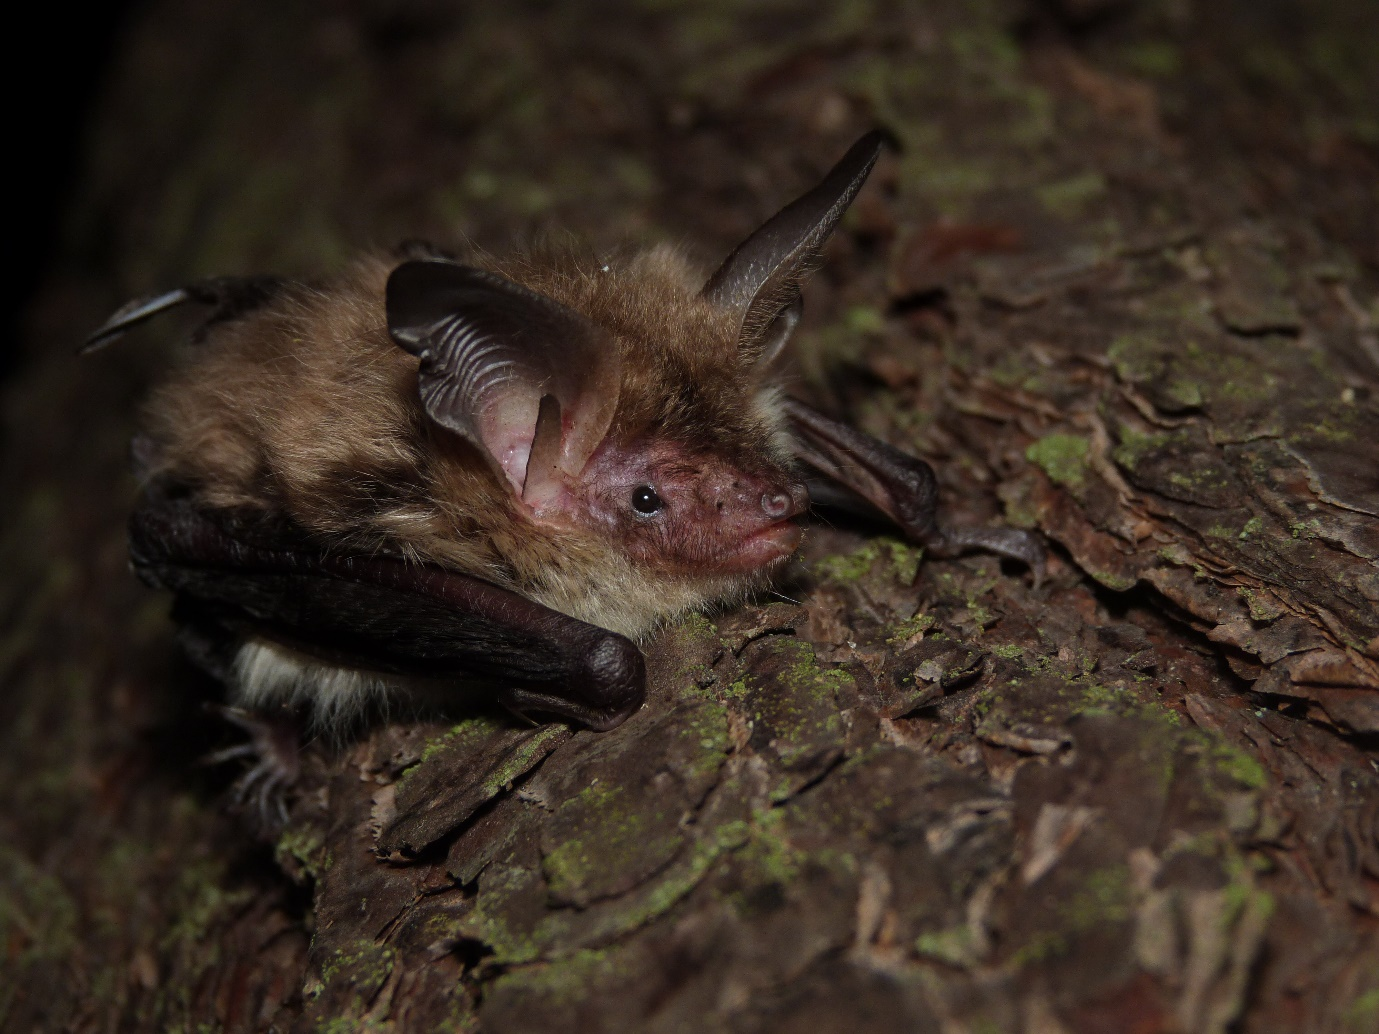 Bechstein's bat – photo credit Claire Wordley